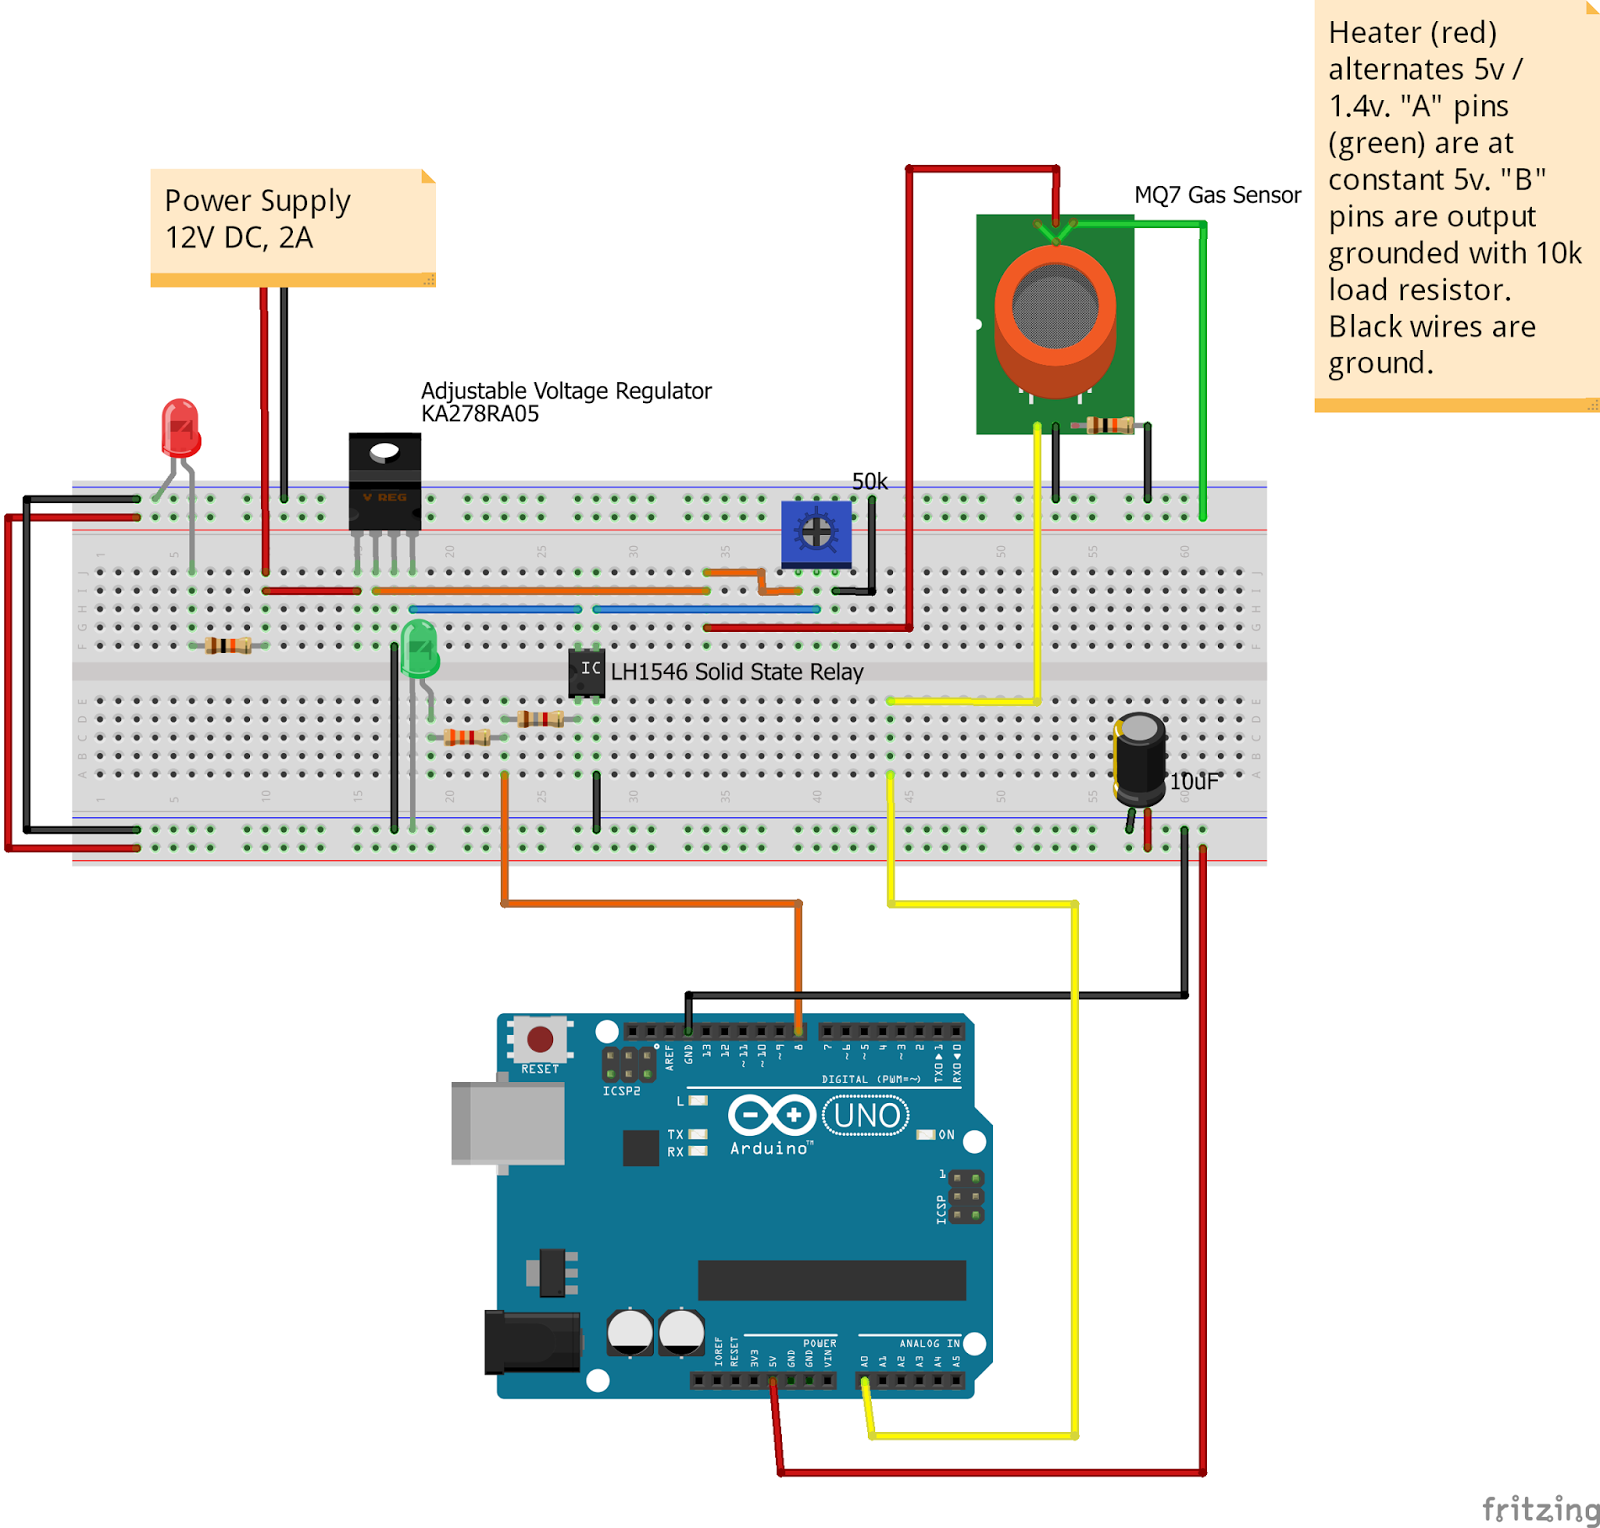 MQ7+Gas+Sensor_bb internet of things co (carbon monoxide) gas sensor using the  at crackthecode.co